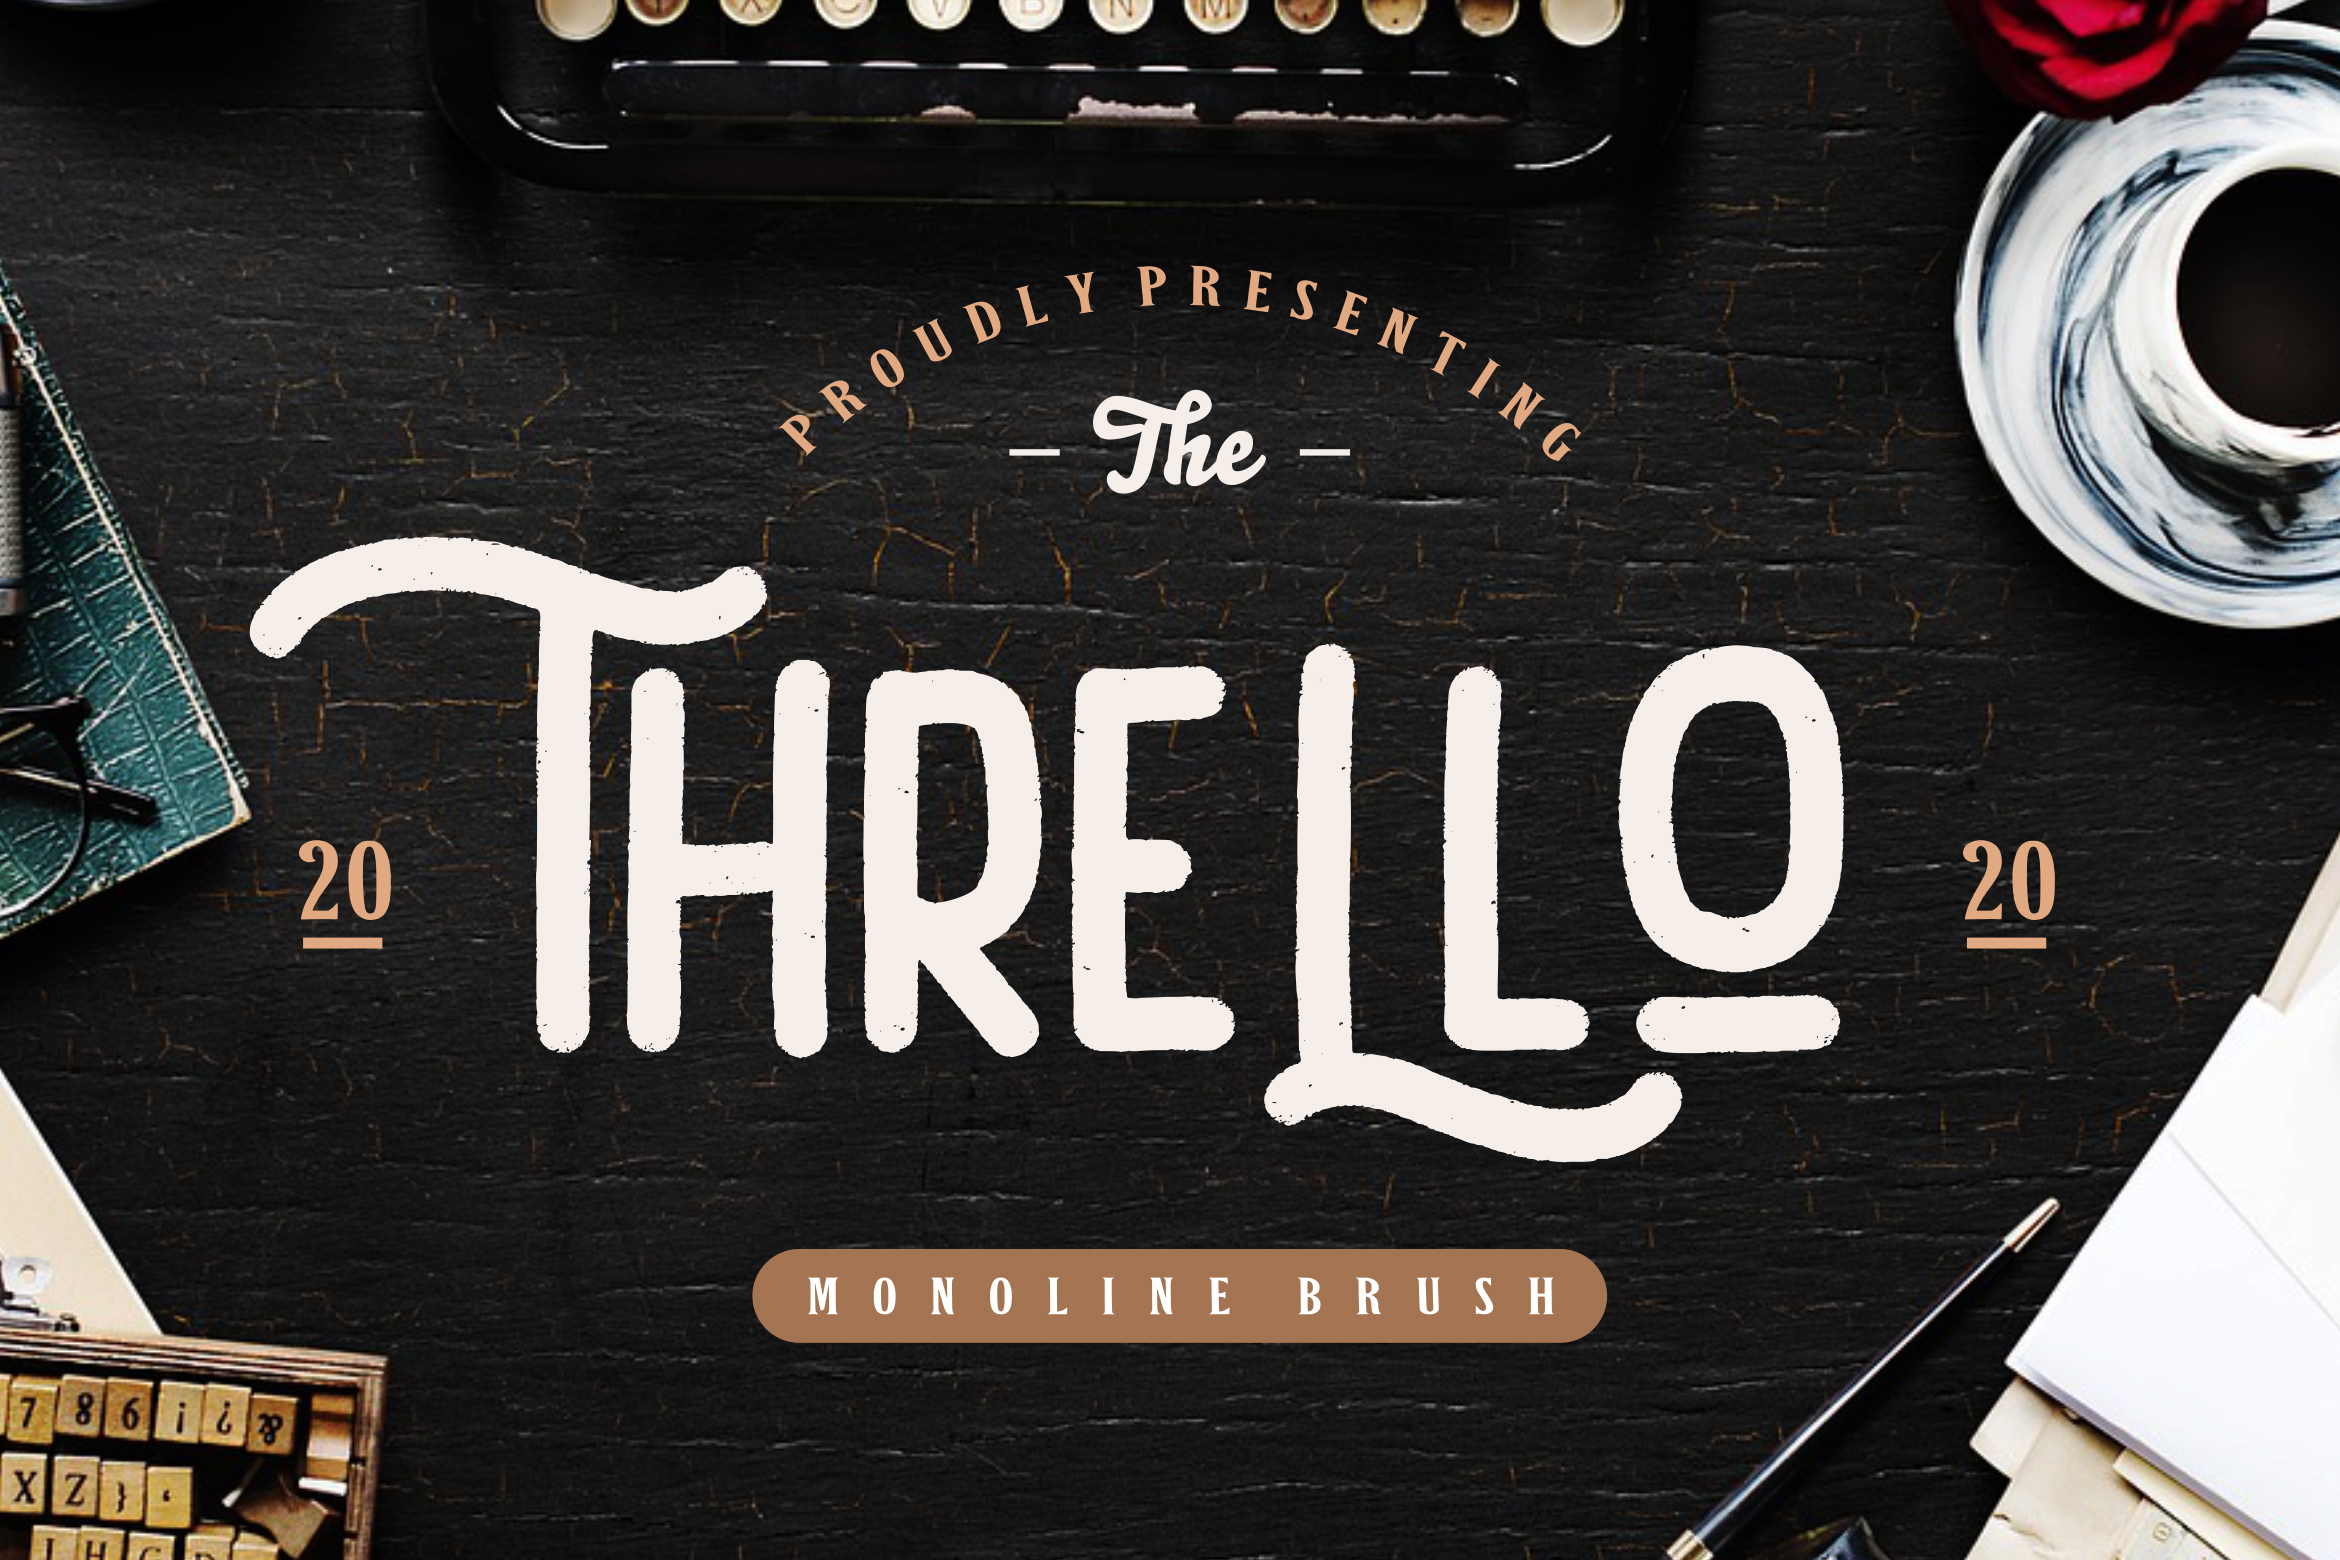 Thrello Monoline Brush example image 1